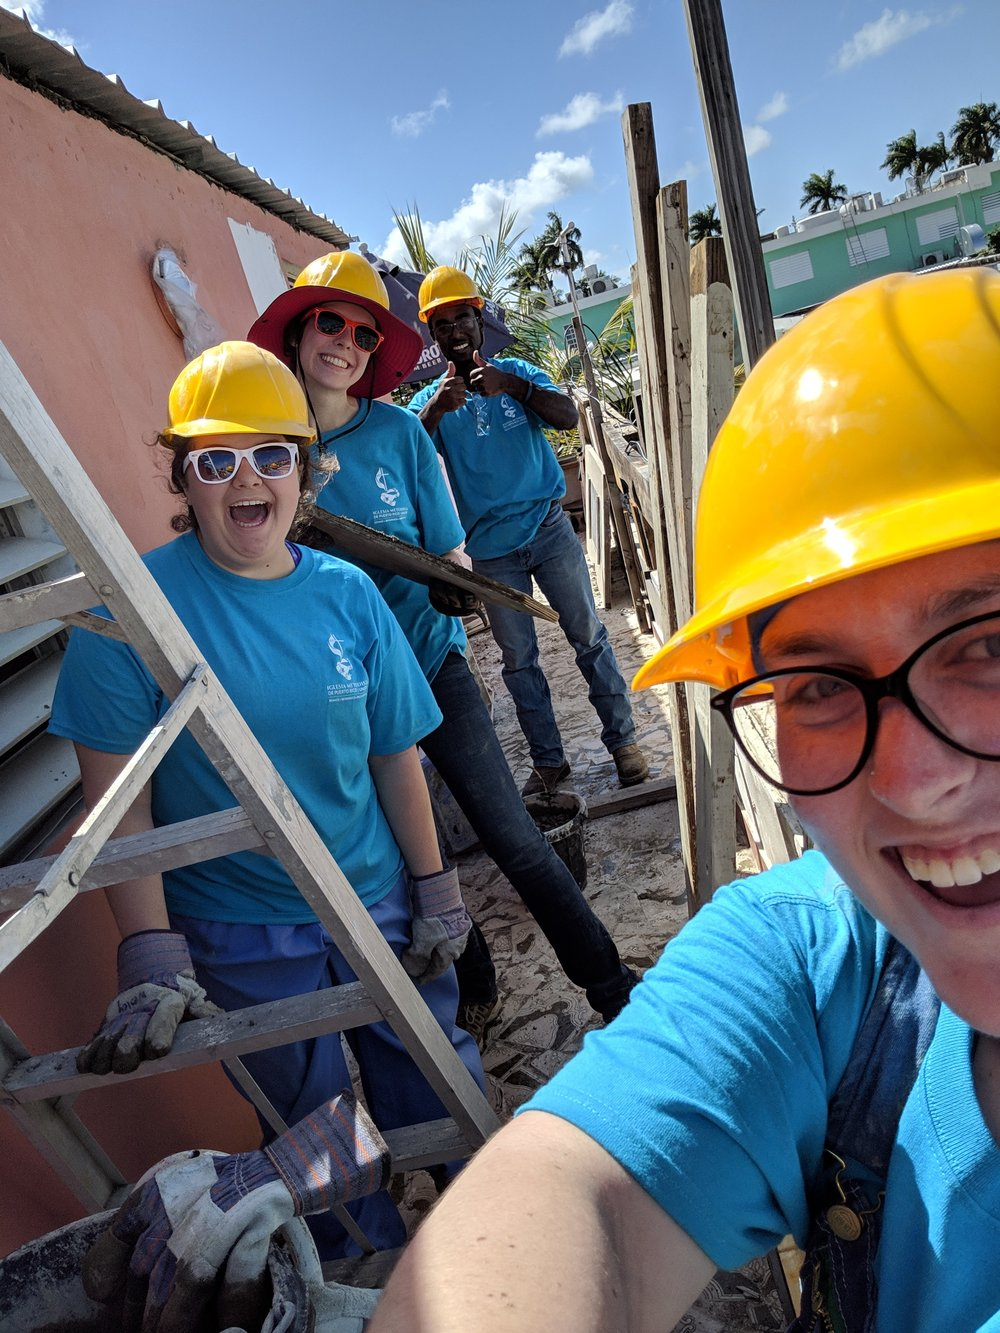 Taylor Vaughan, Sarah Jones, AJ Stanley, and Becca Mercer from Team 2 are shown smiling together before their day's work was started. They spent most of the day doing rebar. Not pictured is Korie Burgess, who spent most of her day tearing out tile from the bathroom.